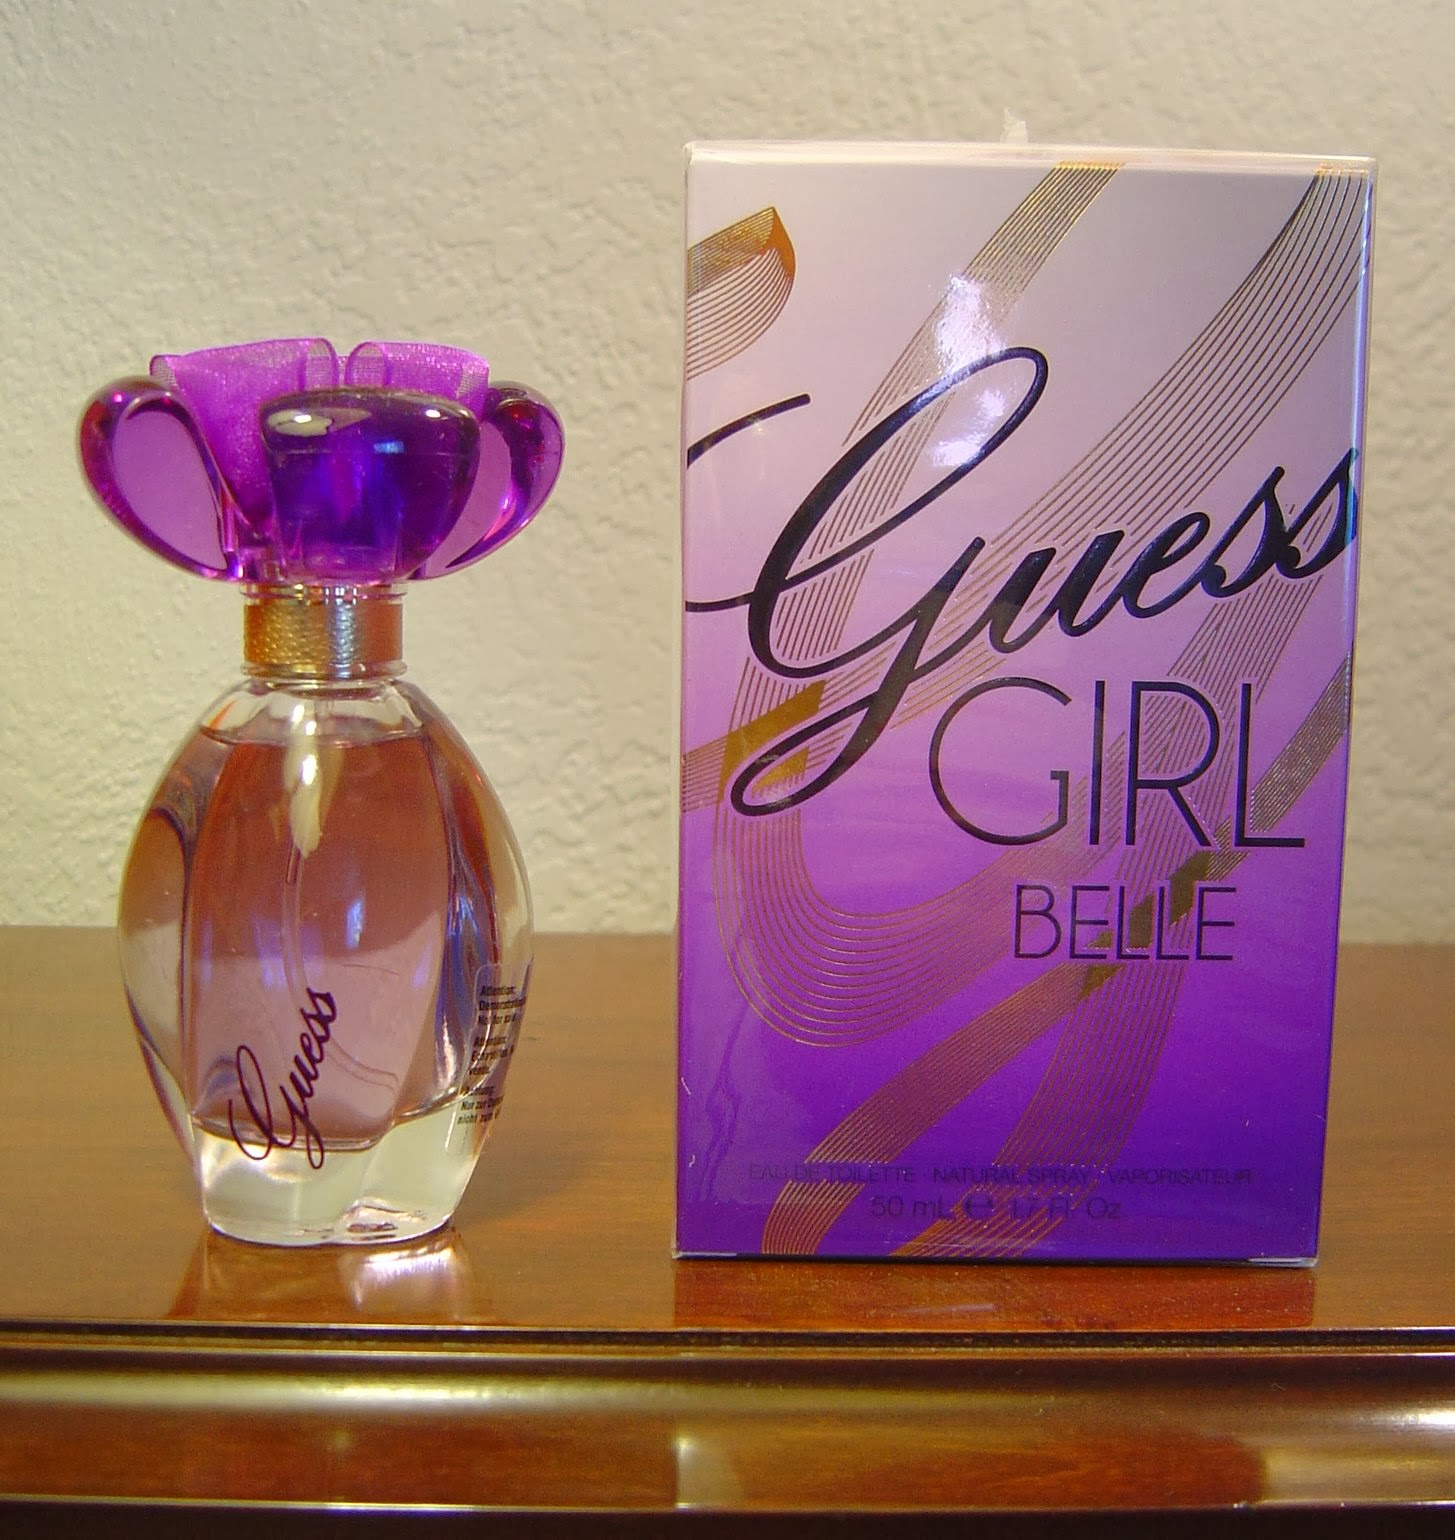 Guess Girl Belle Eau De Toilette Is A Must Have Gift Giveaway Ends